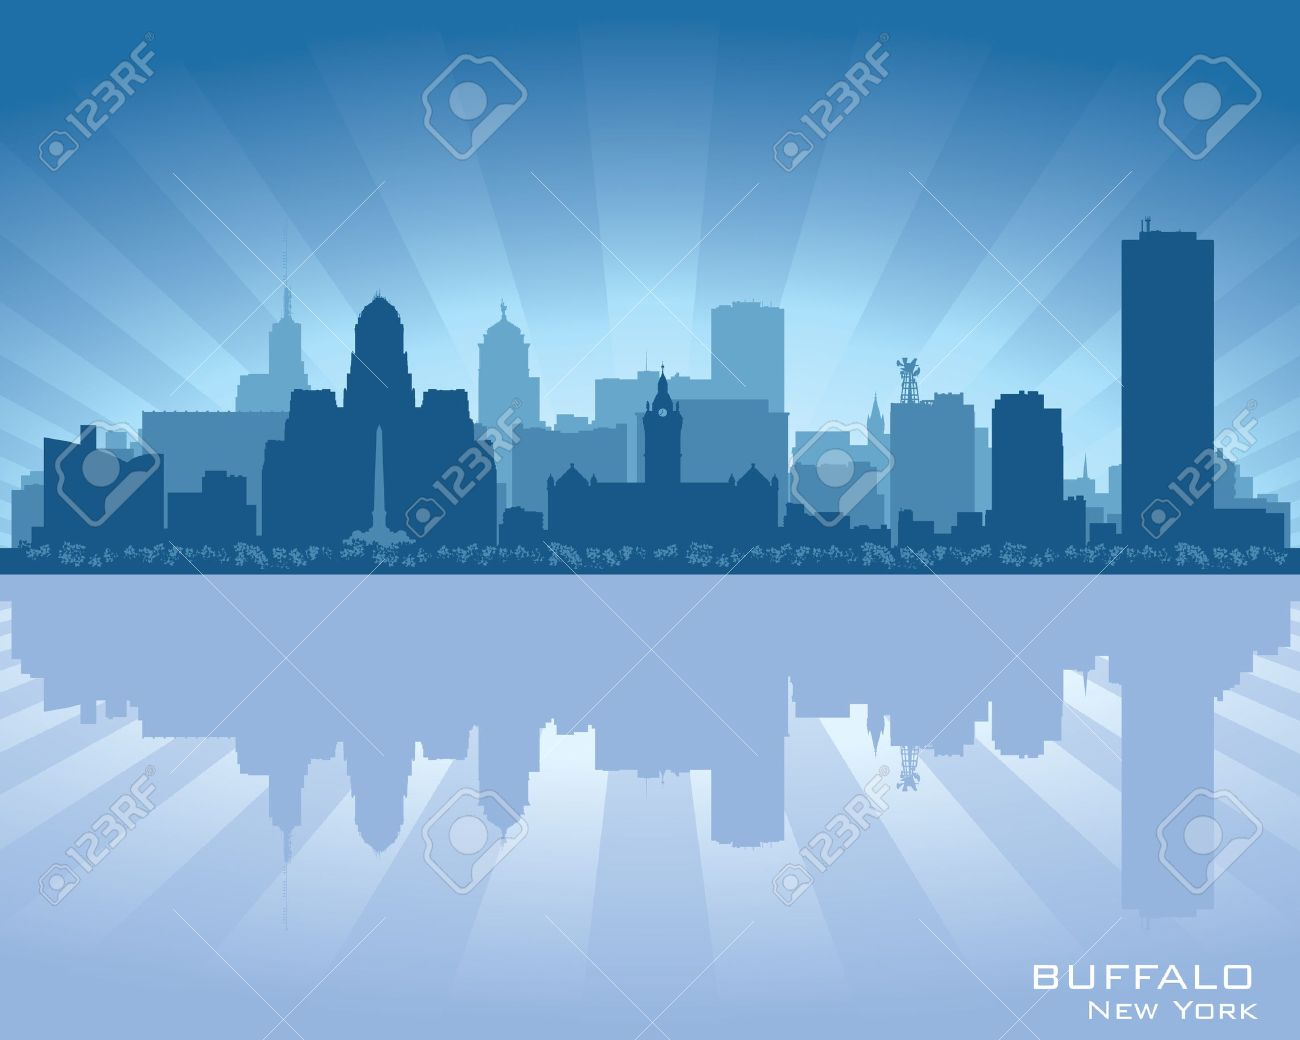 Buffalo ny skyline images